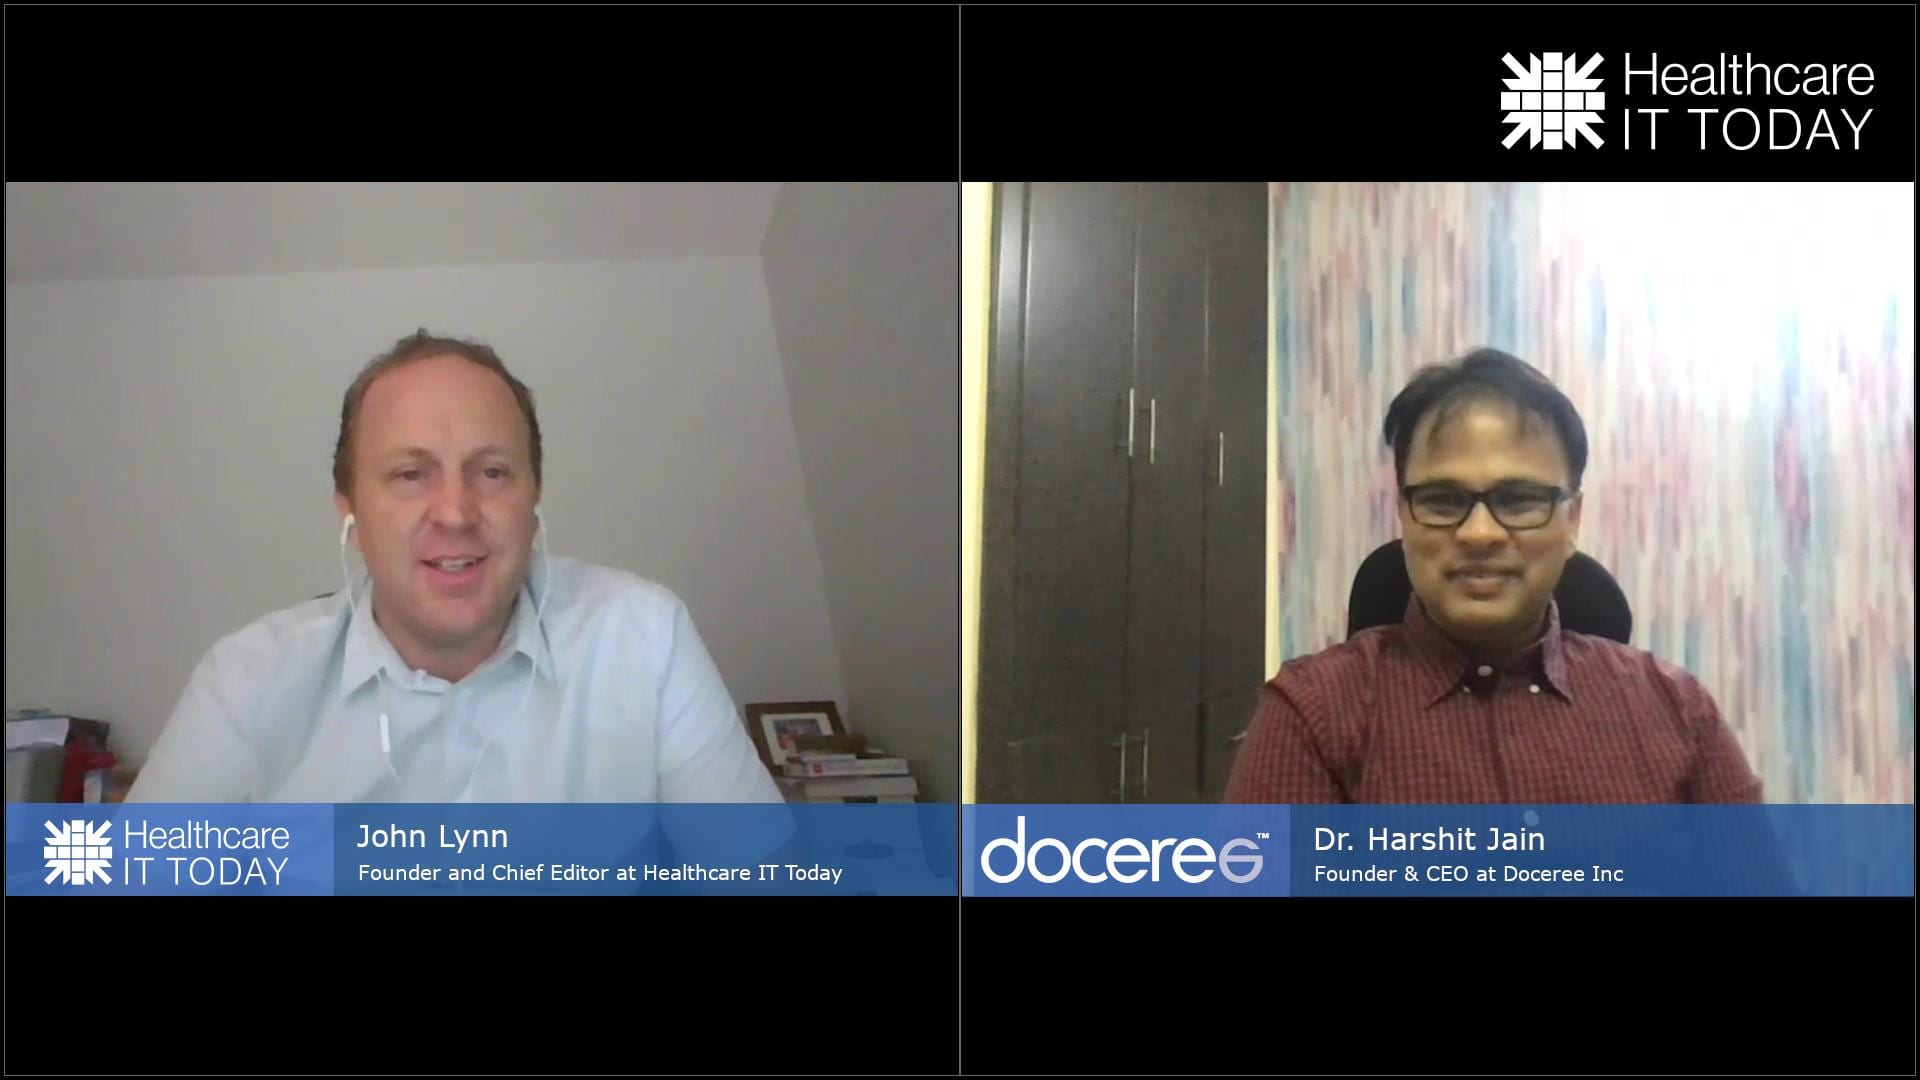 Doceree is Bringing Pharma Advertising to EHR and Telehealth